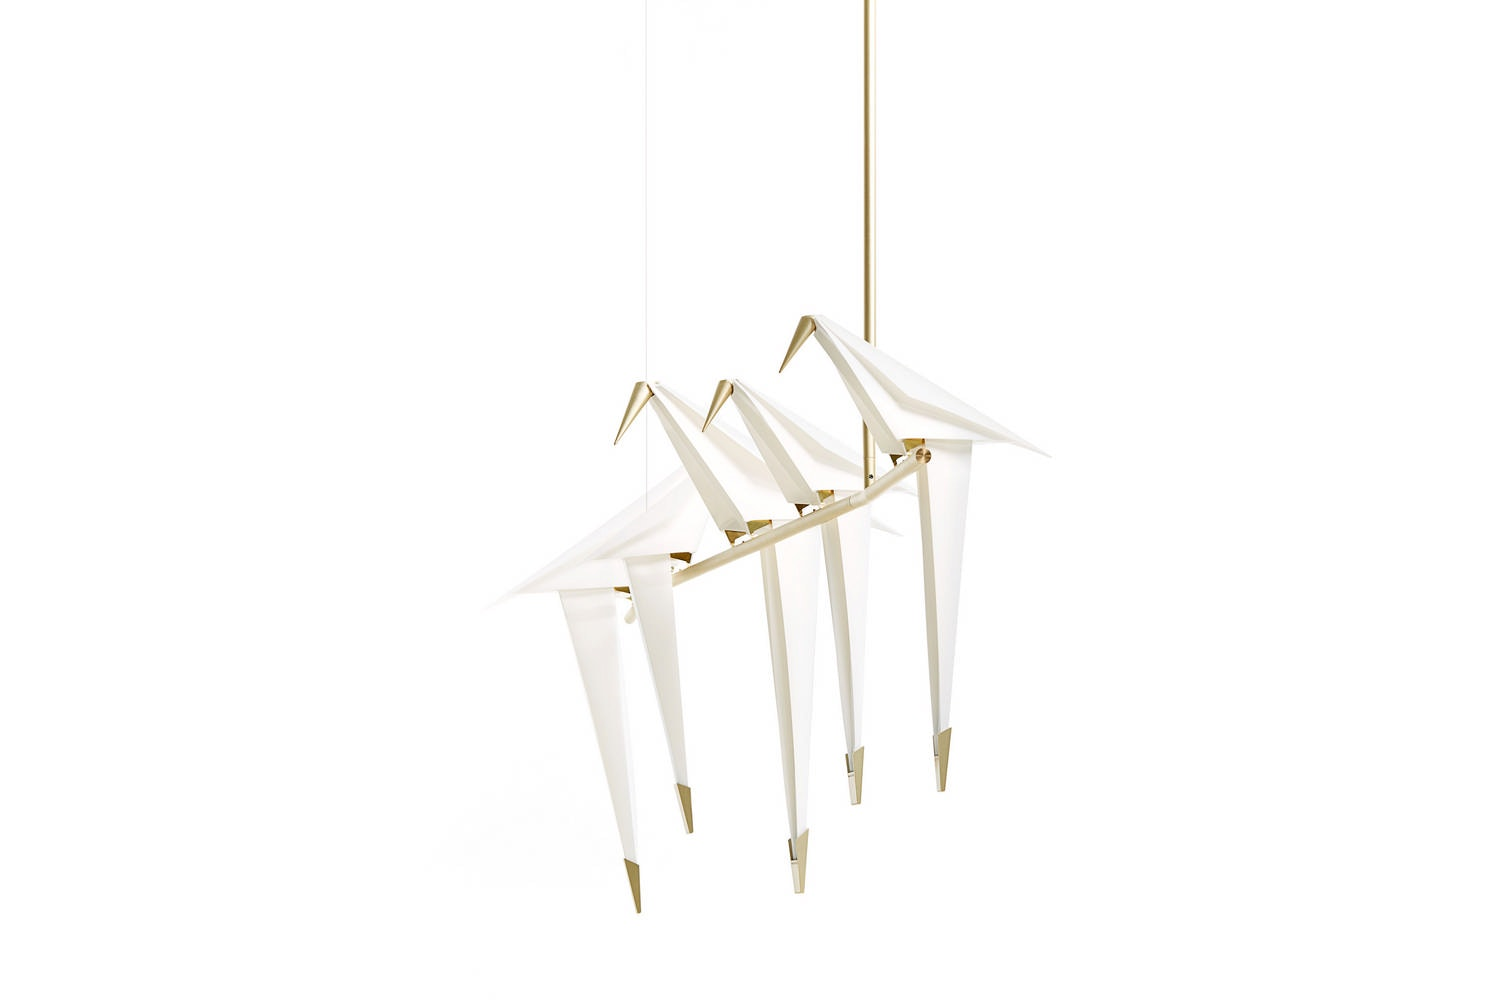 Perch Light Branch Suspension Lamp by Arihiro Miyake for Moooi